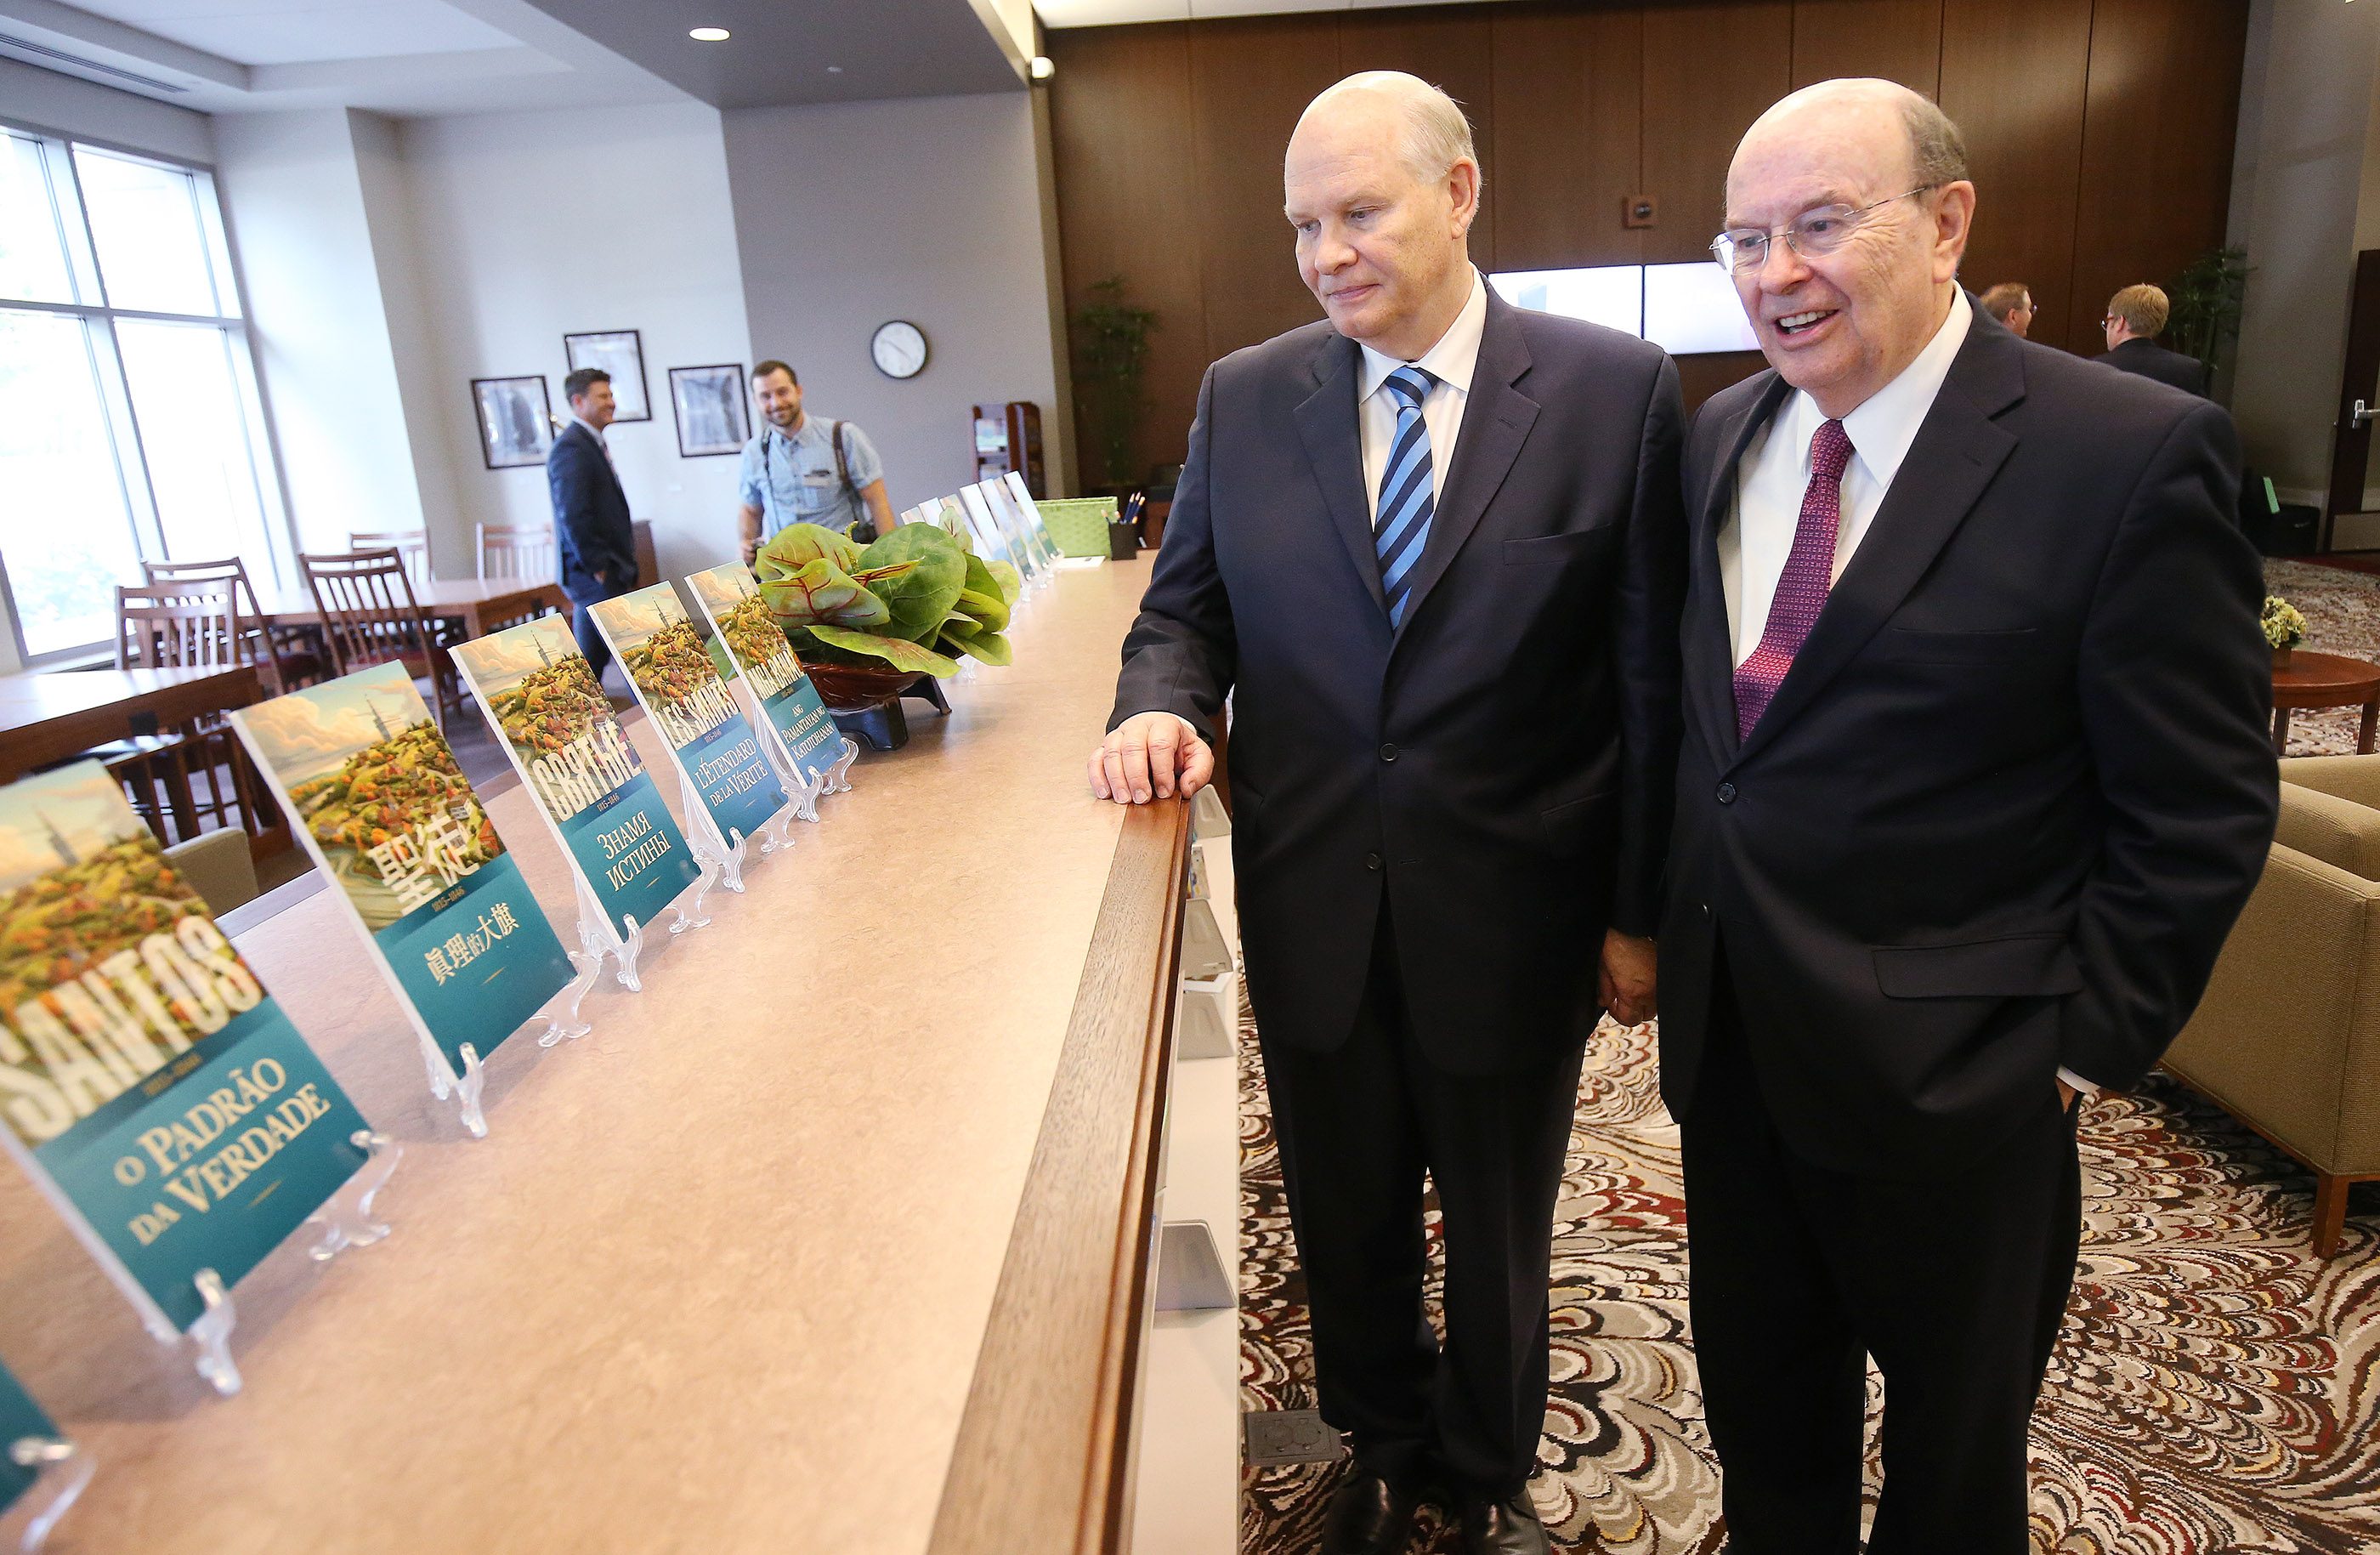 """Elder Dale G. Renlund and Elder Quentin L. Cook, both of the Quorum of the Twelve Apostles, look over different language editions of """"Saints: The Story of the Church of Jesus Christ in the Latter Days"""" in Salt Lake City on Tuesday, Sept. 4, 2018."""